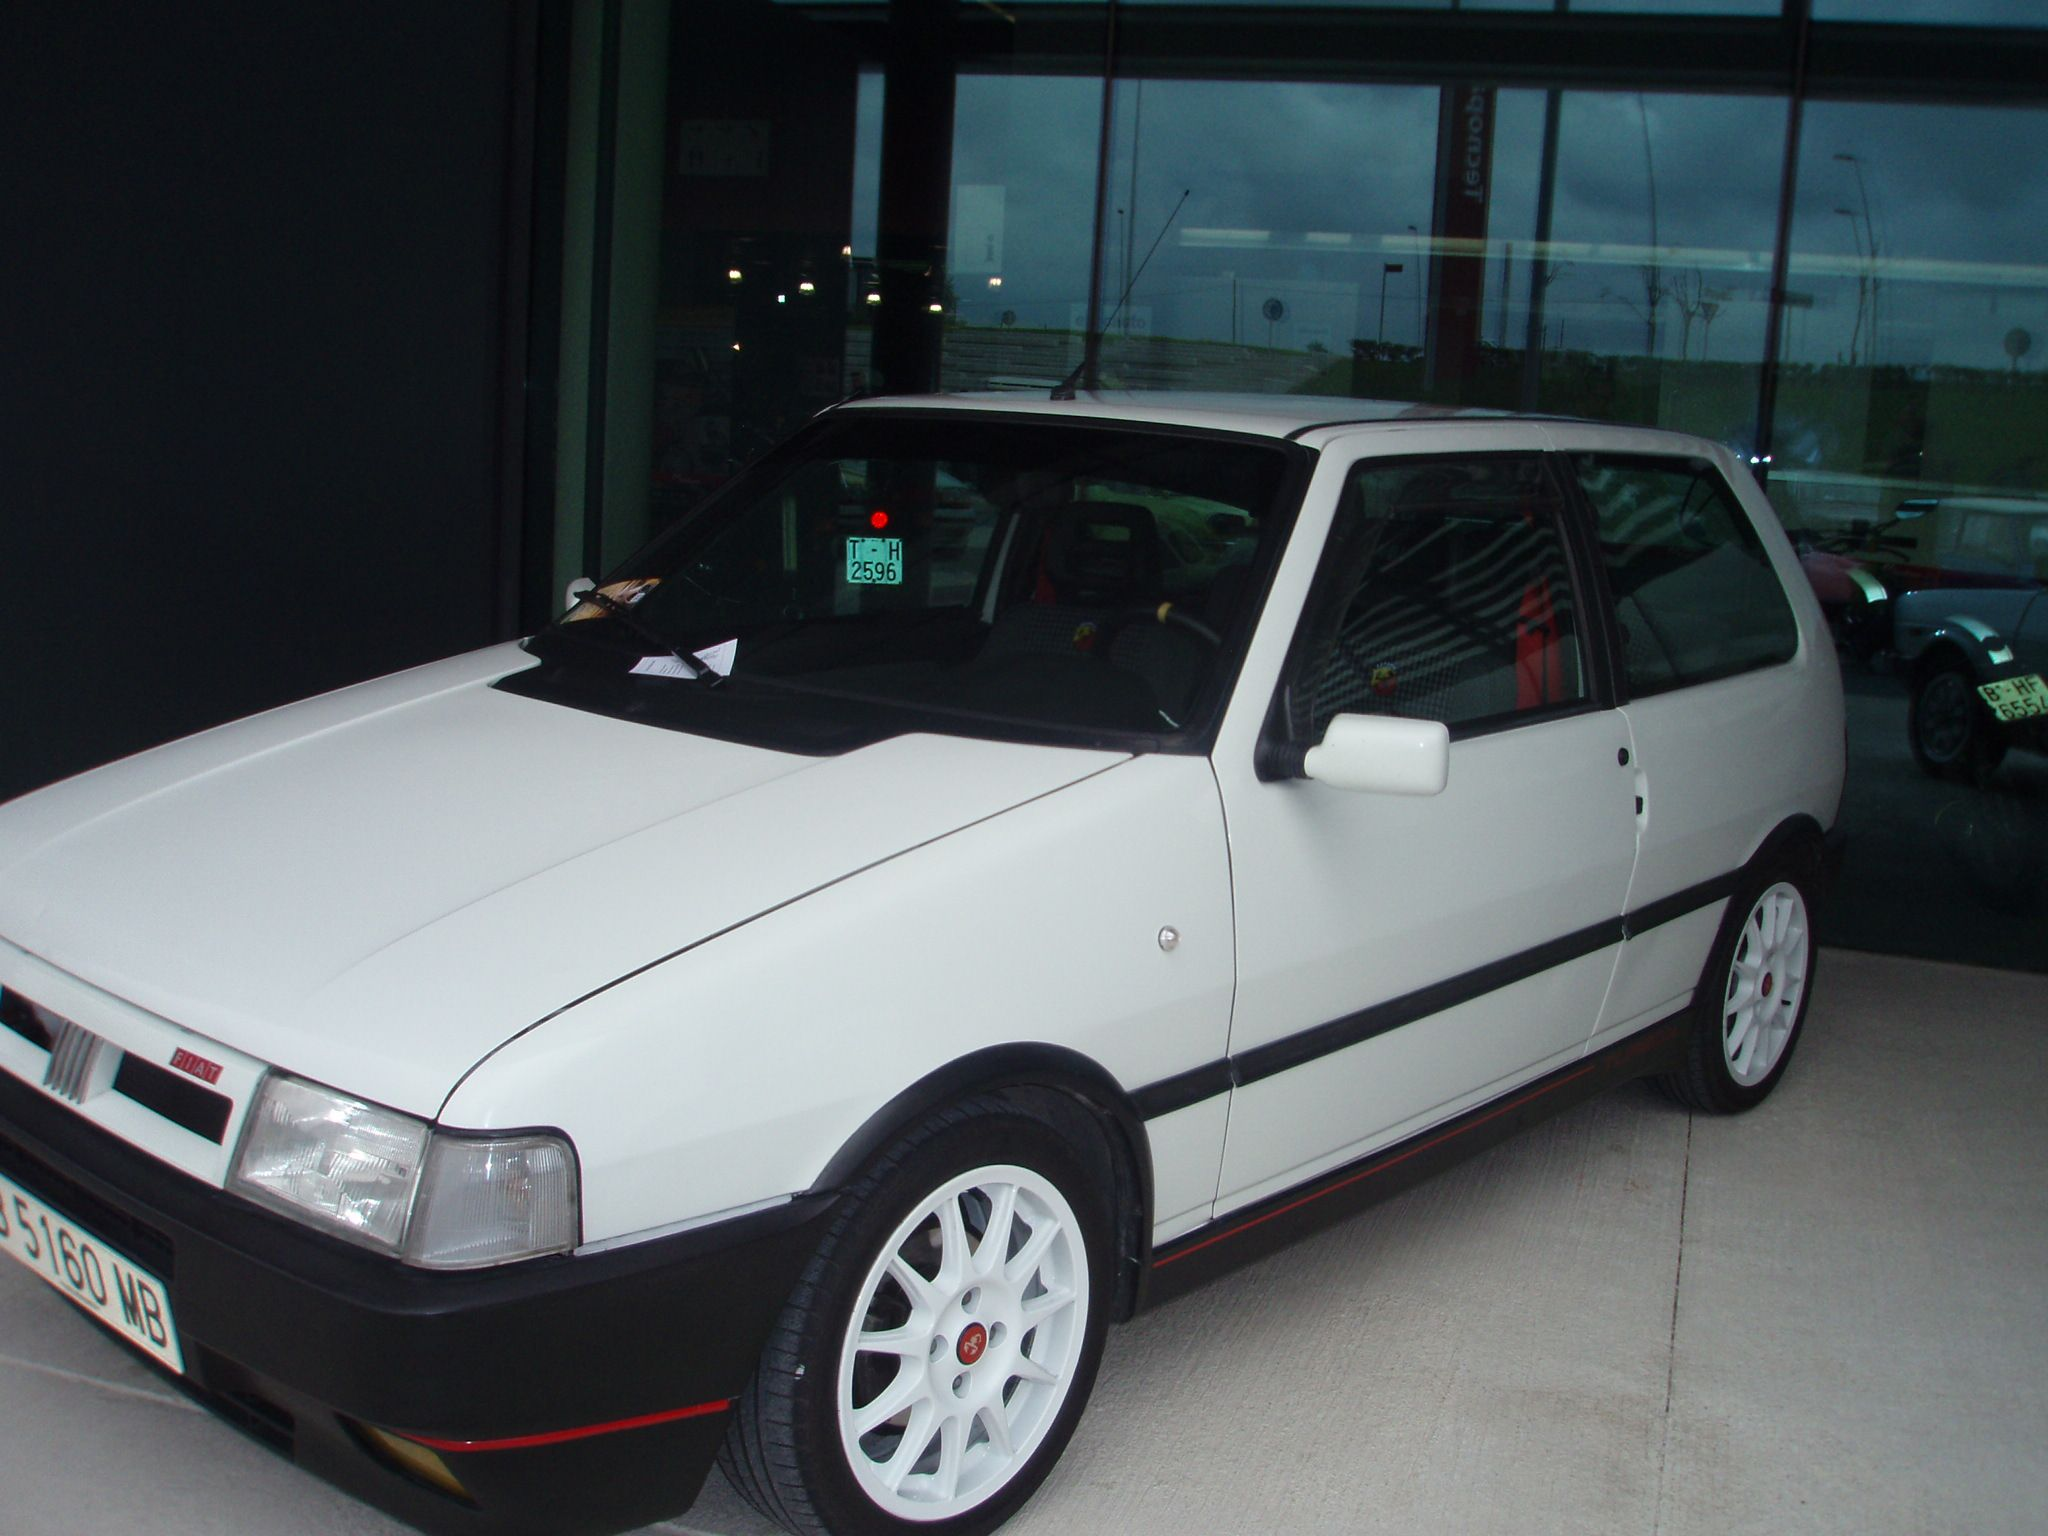 fiat uno turbo fiat pinterest fiat uno fiat and cars. Black Bedroom Furniture Sets. Home Design Ideas